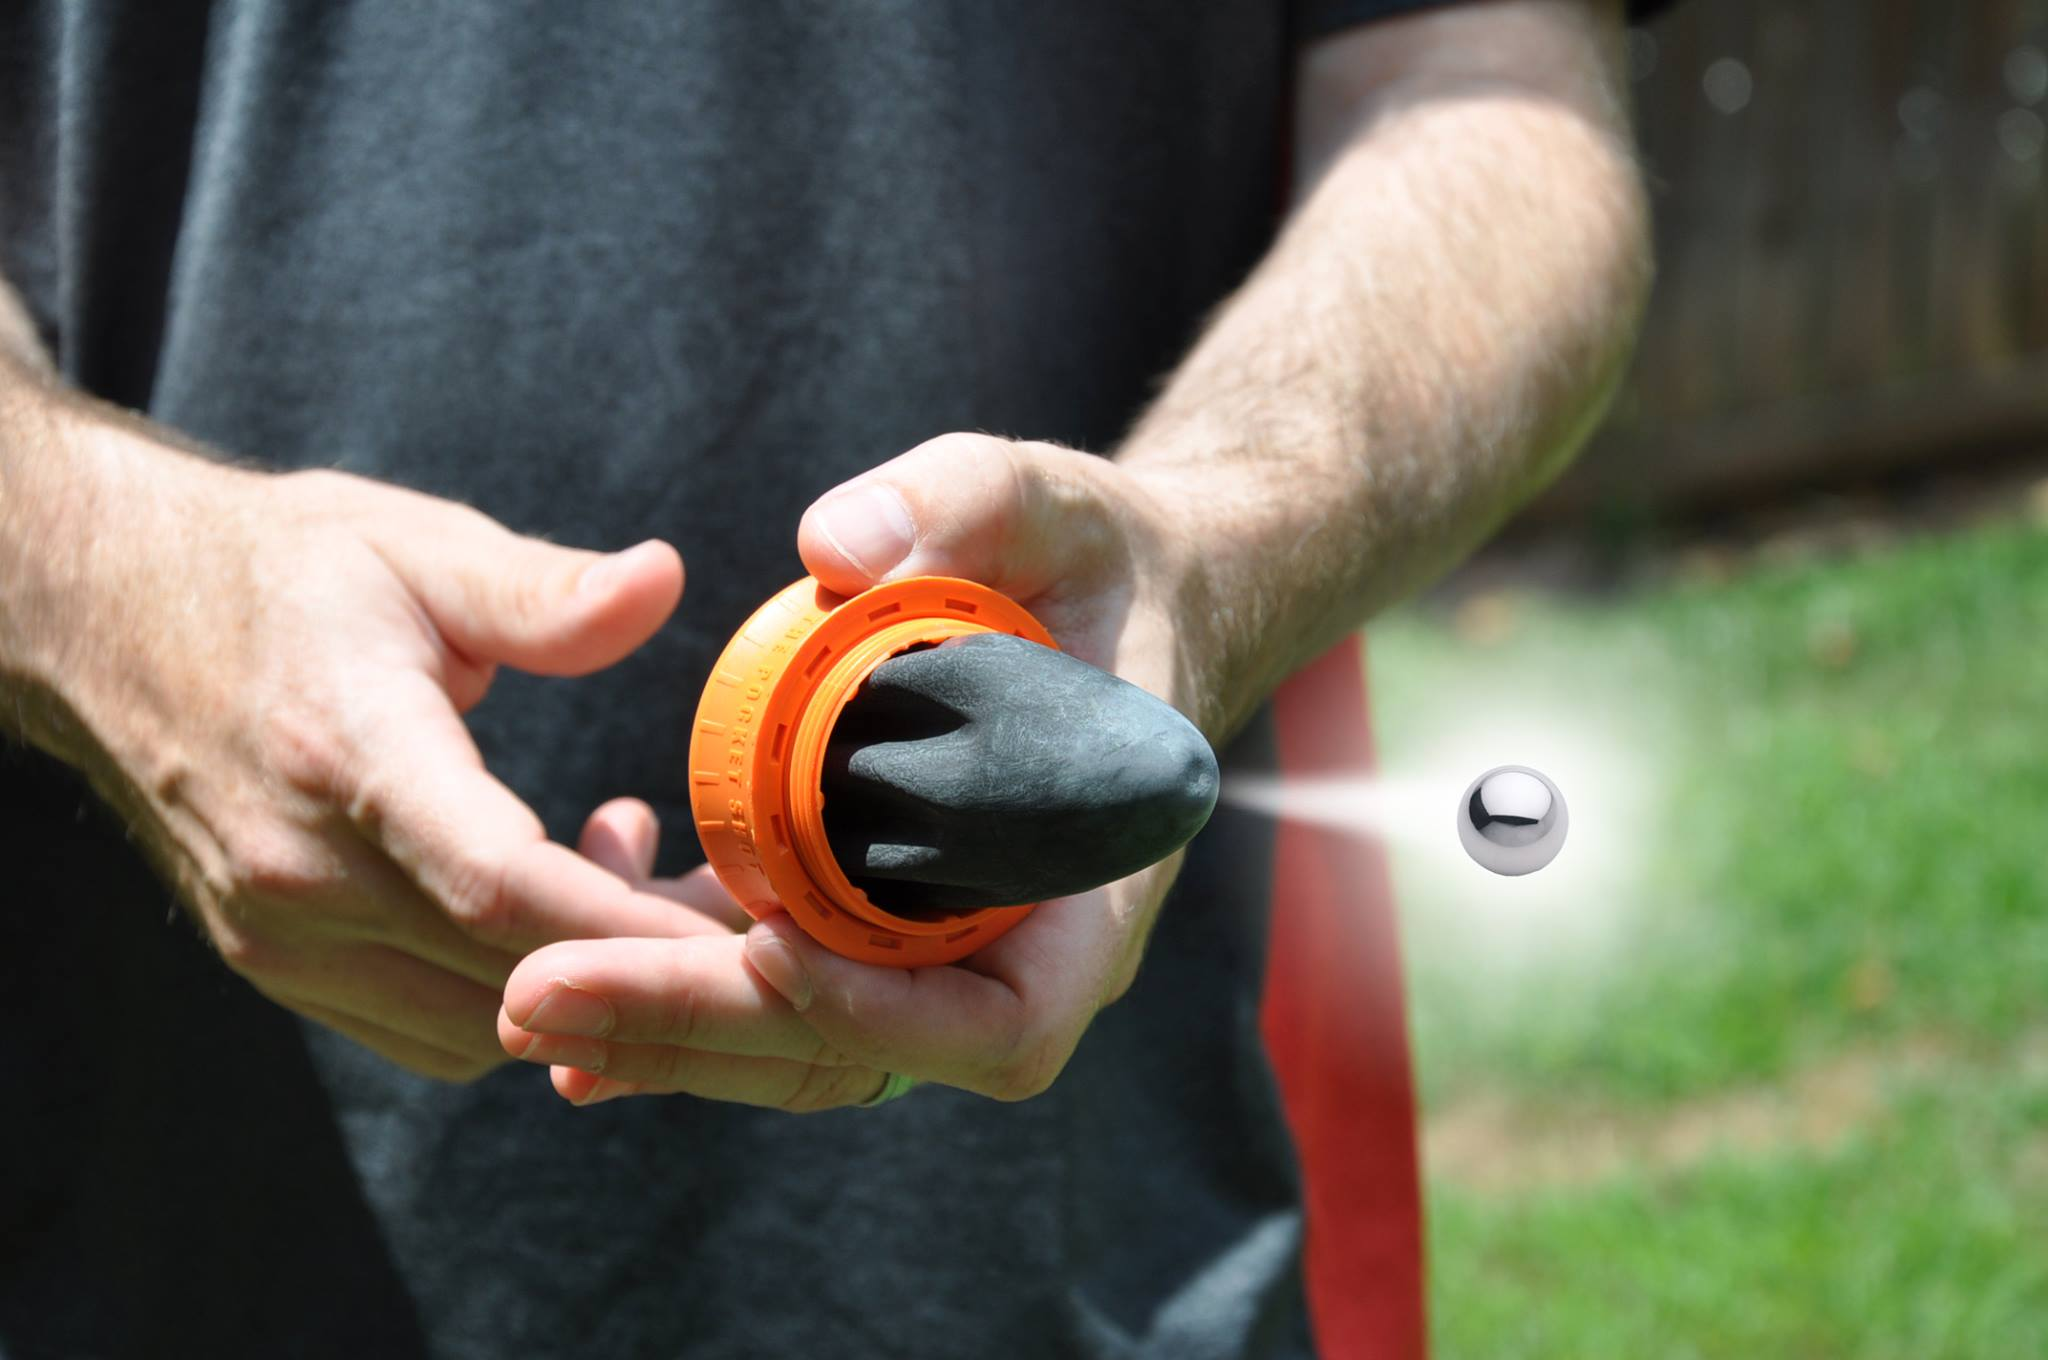 This Strange Device Is Meant To Hunt Small Game Outdoorhub